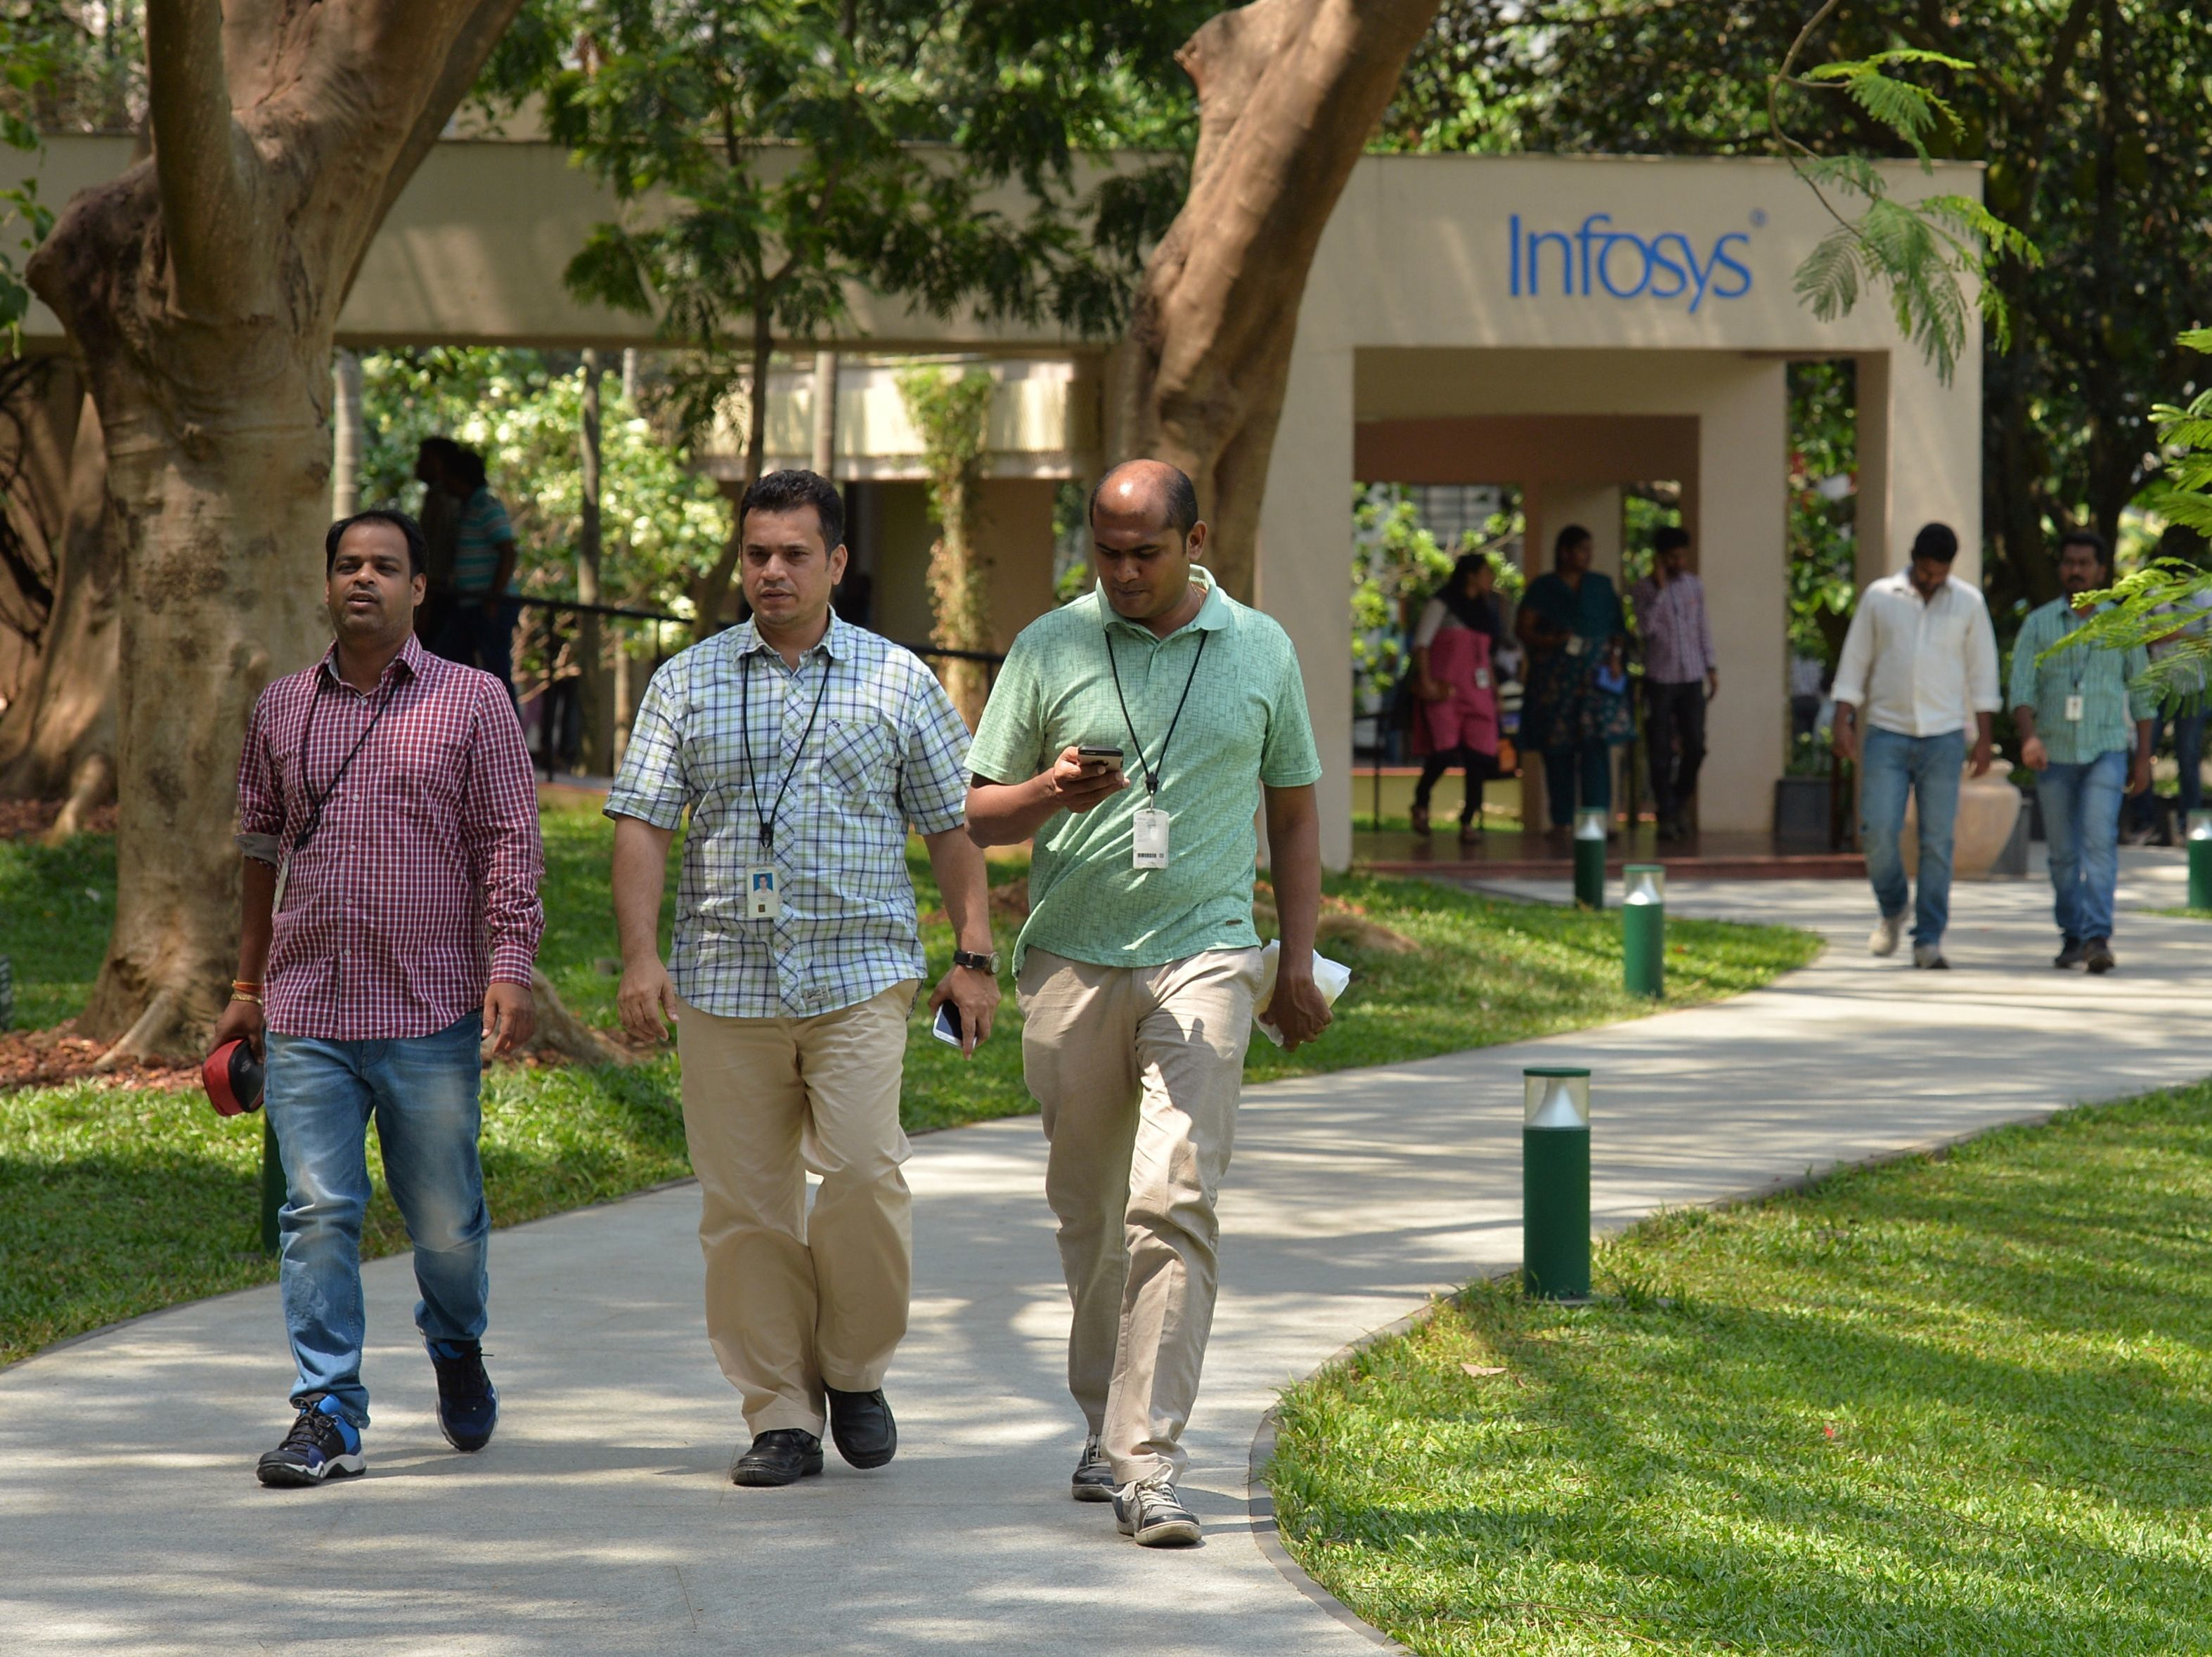 Employees of Infosys Technologies walk on the campus of the company's headquarters in Bangalore, India, on April 13. (Manjunath Kiran/AFP/Getty Images)